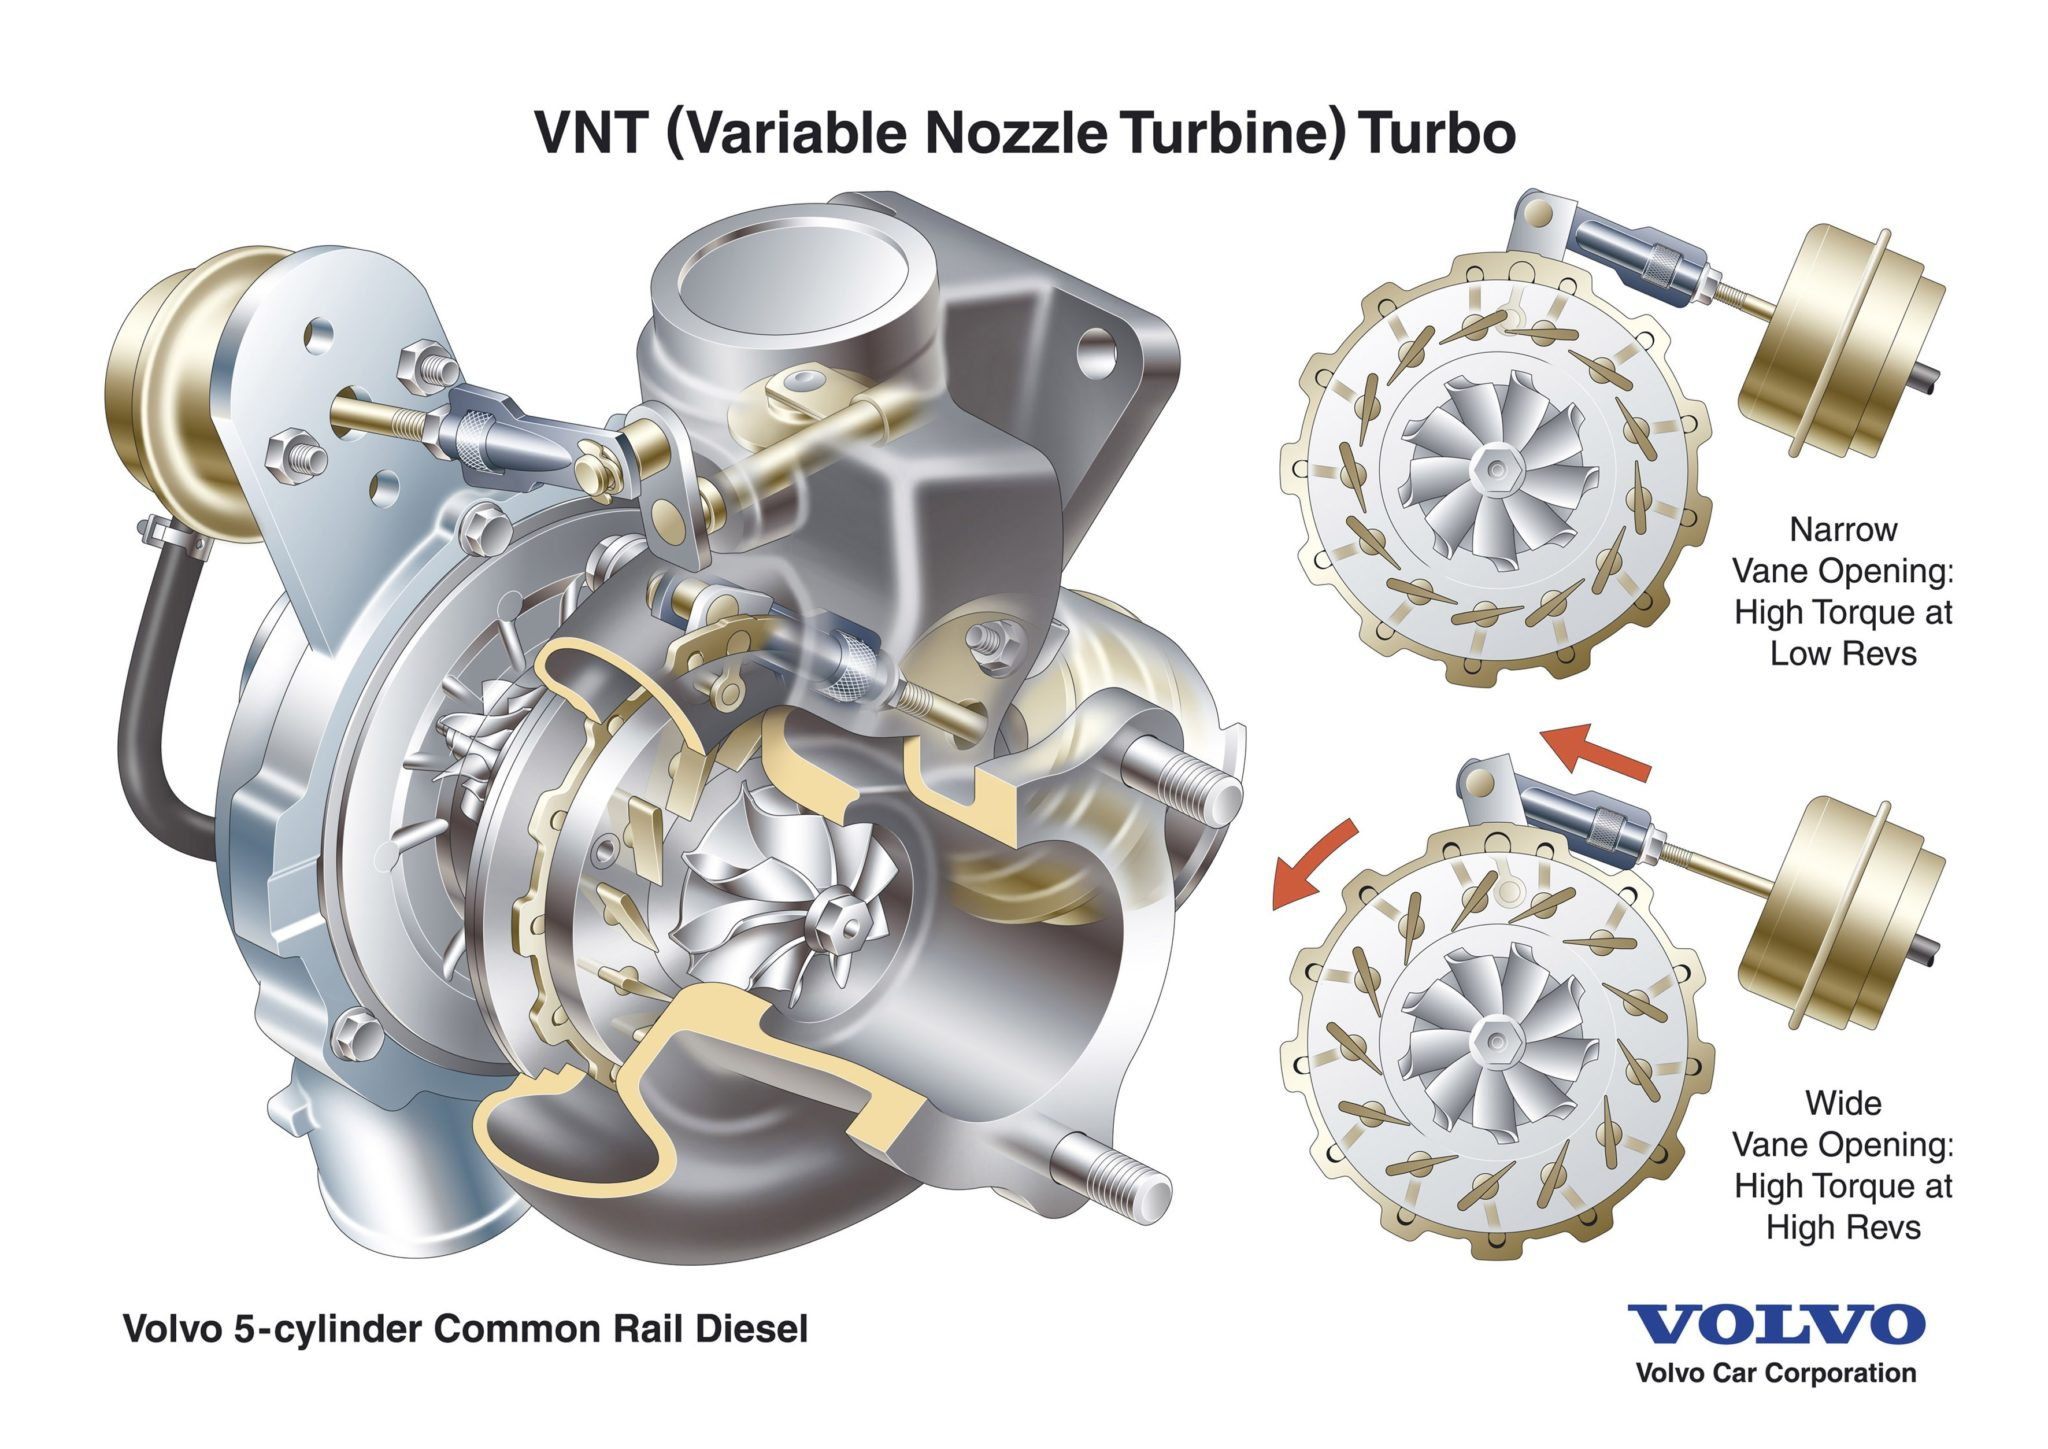 Booster Shot: How Future Turbochargers Will Deliver More Power and Efficiency 2